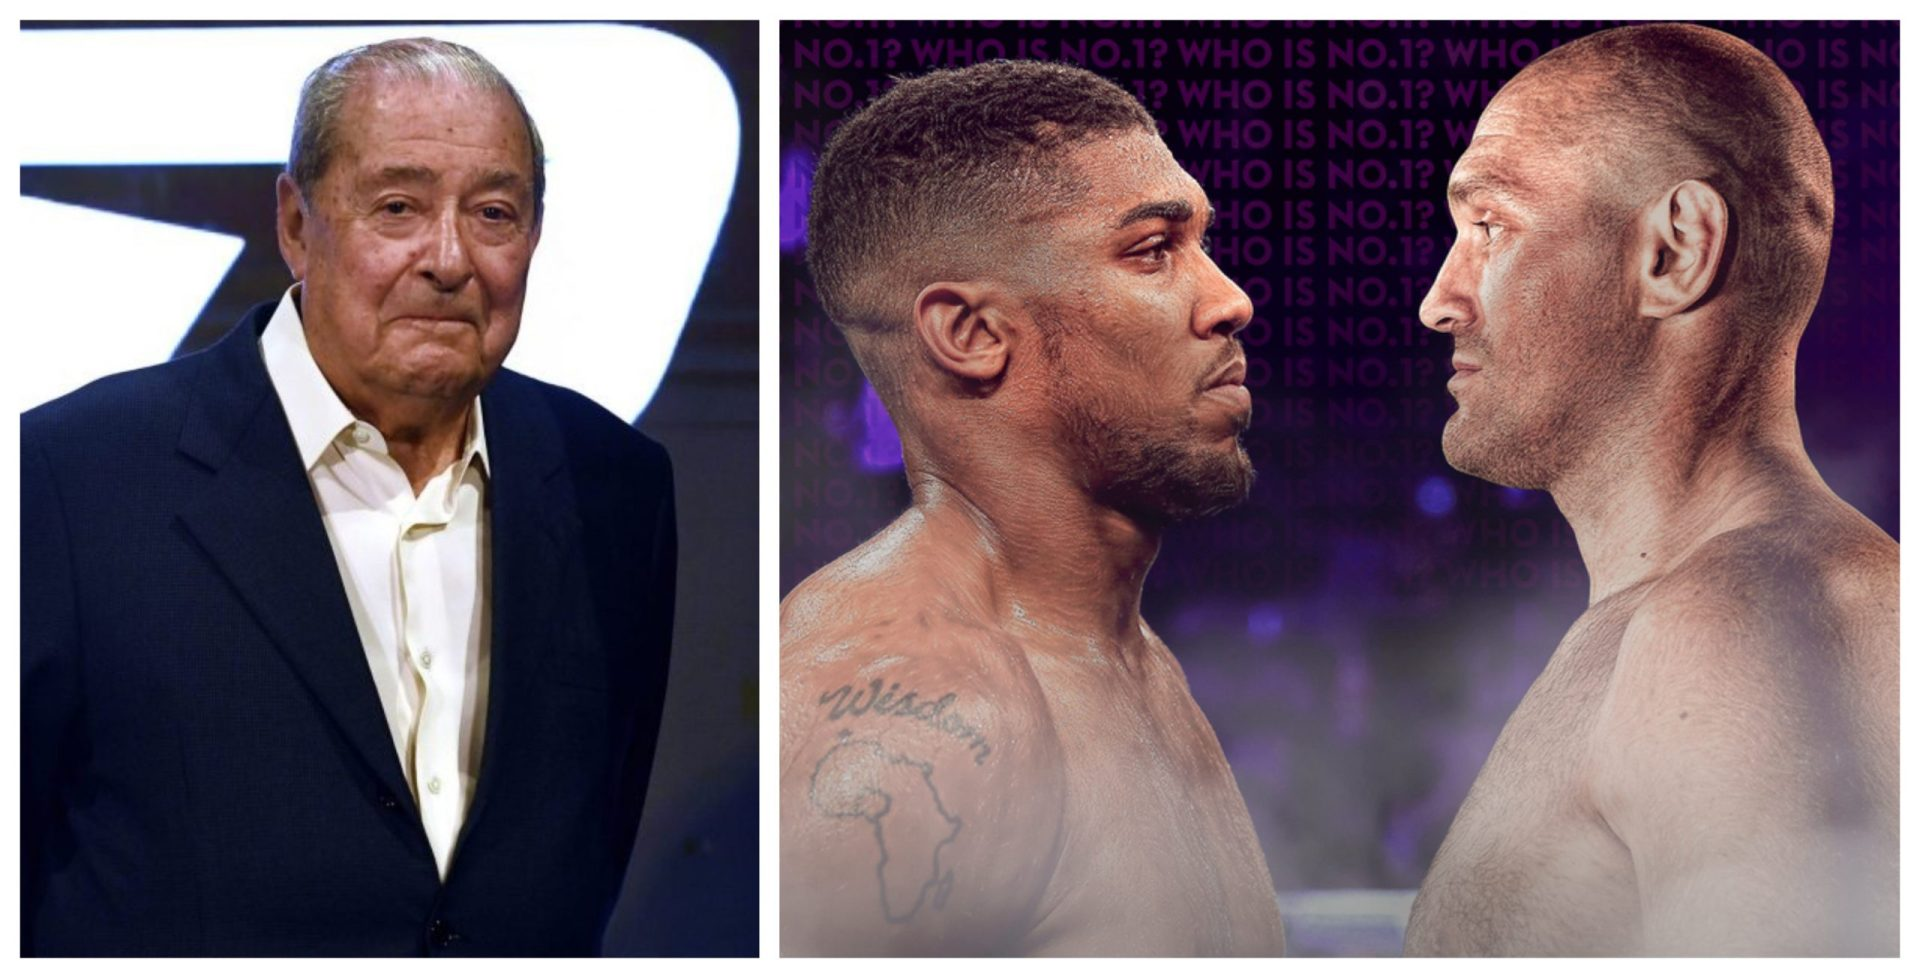 Tyson Fury v Anthony Joshua: Fight location set, both boxers to earn $100 million each, claims Bob Arum - THE SPORTS ROOM